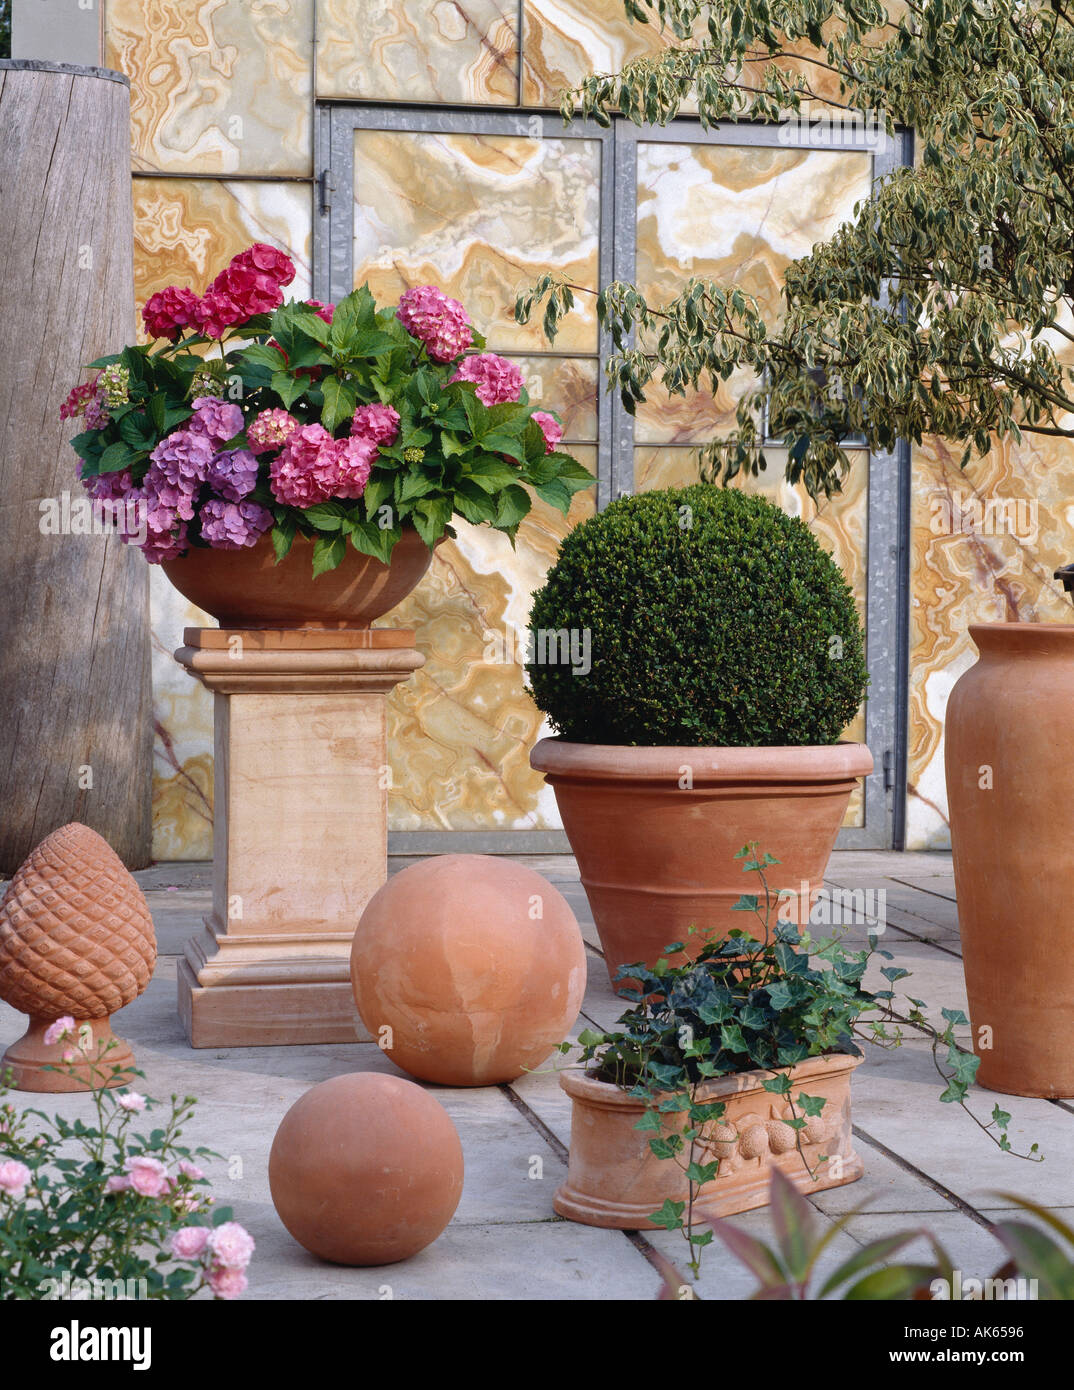 terracotta flower pots on terrace blumentoepfe aus. Black Bedroom Furniture Sets. Home Design Ideas